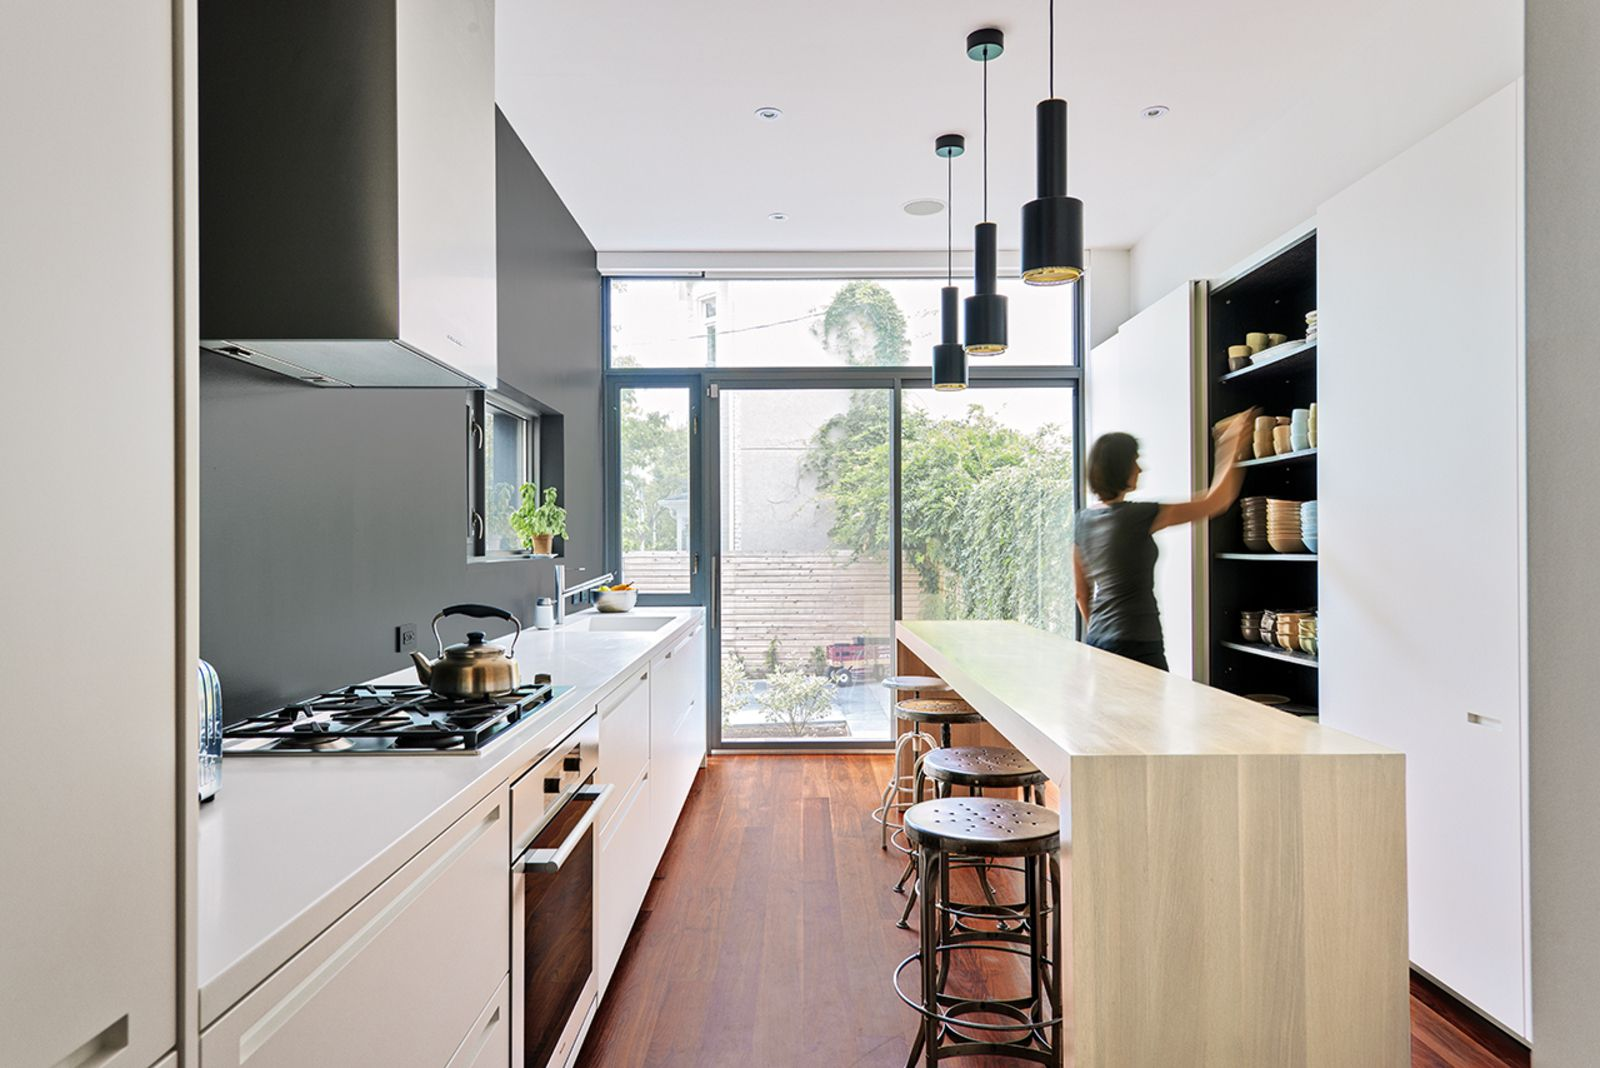 GroBartig Modern Kitchens By Allie Weiss From Contrast House